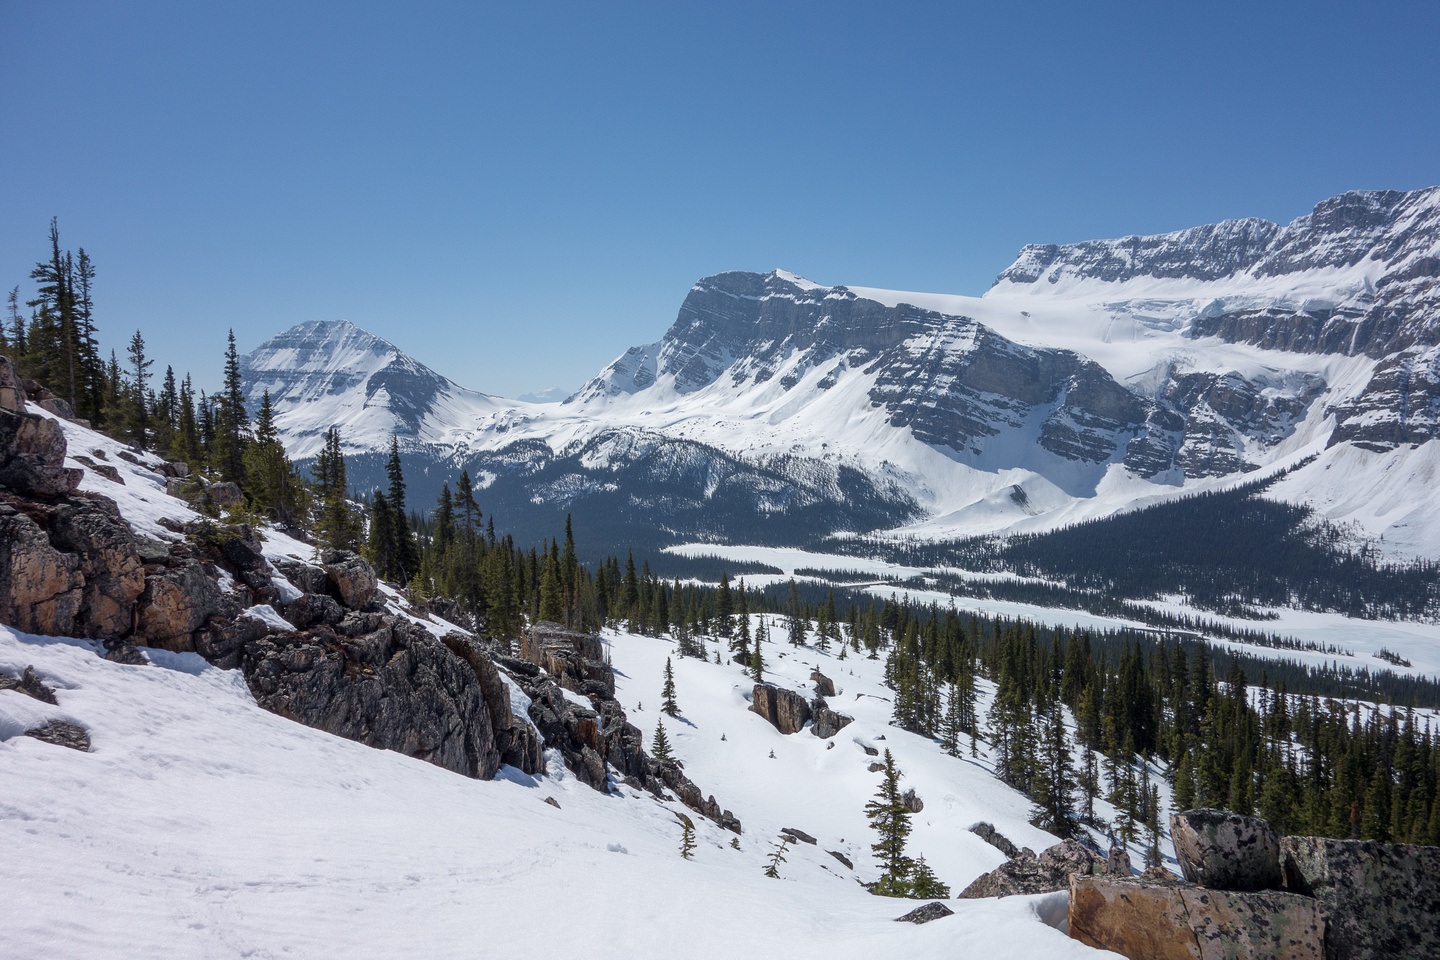 Bow Peak on the left and Crowfoot Mountain on the right with Crowfoot Pass between them.